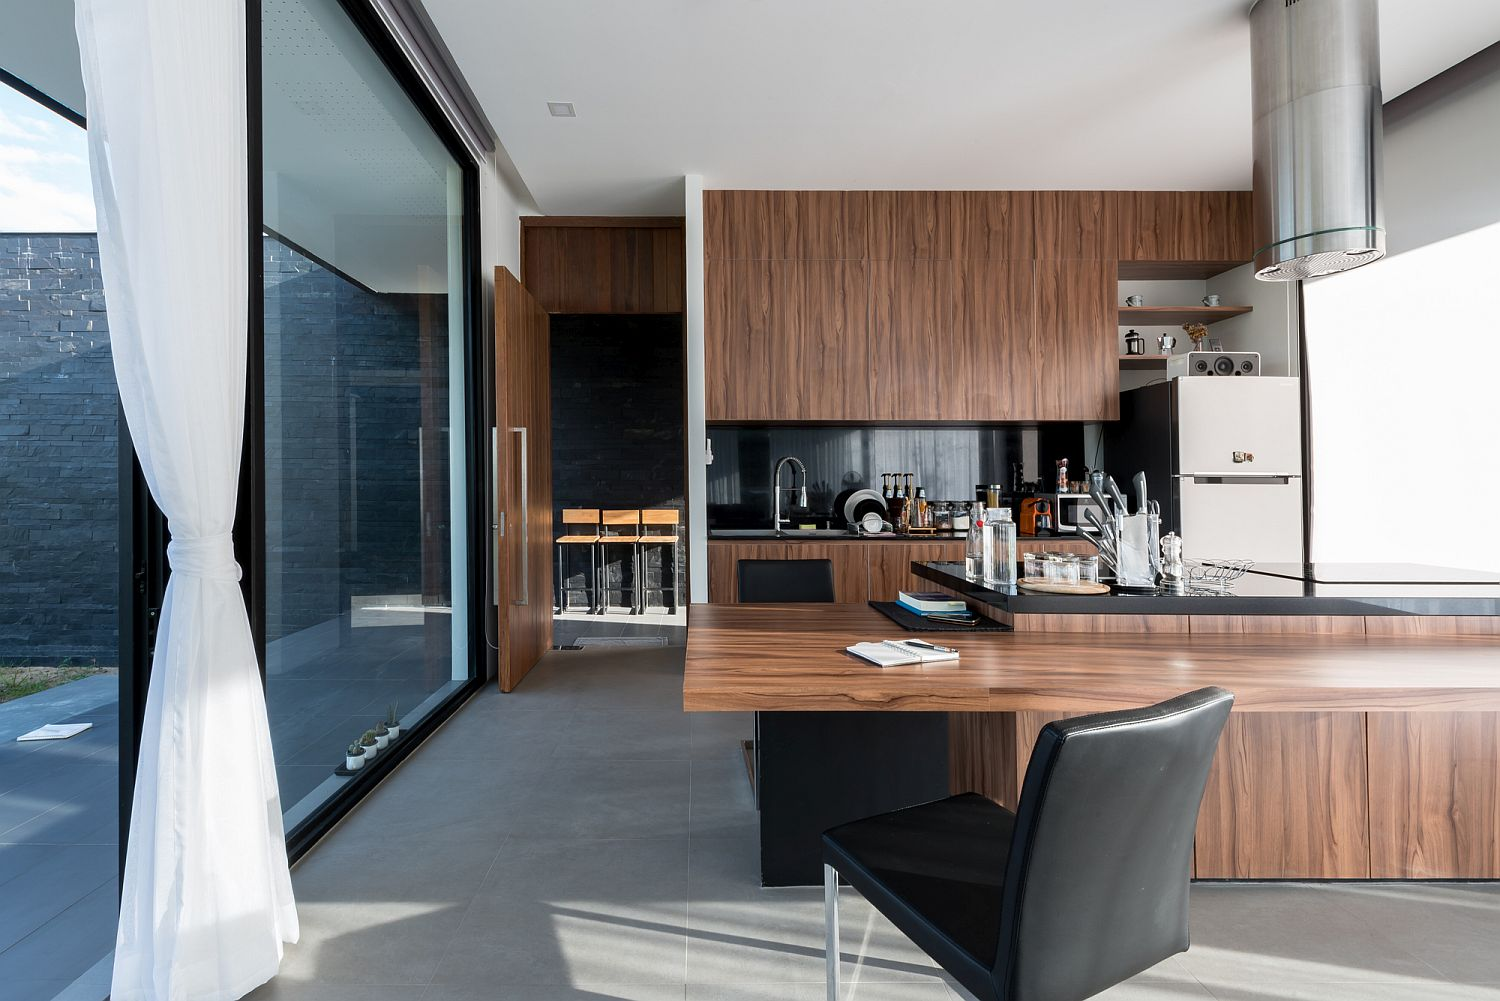 Kitchen and wood inside the the modern kitchen